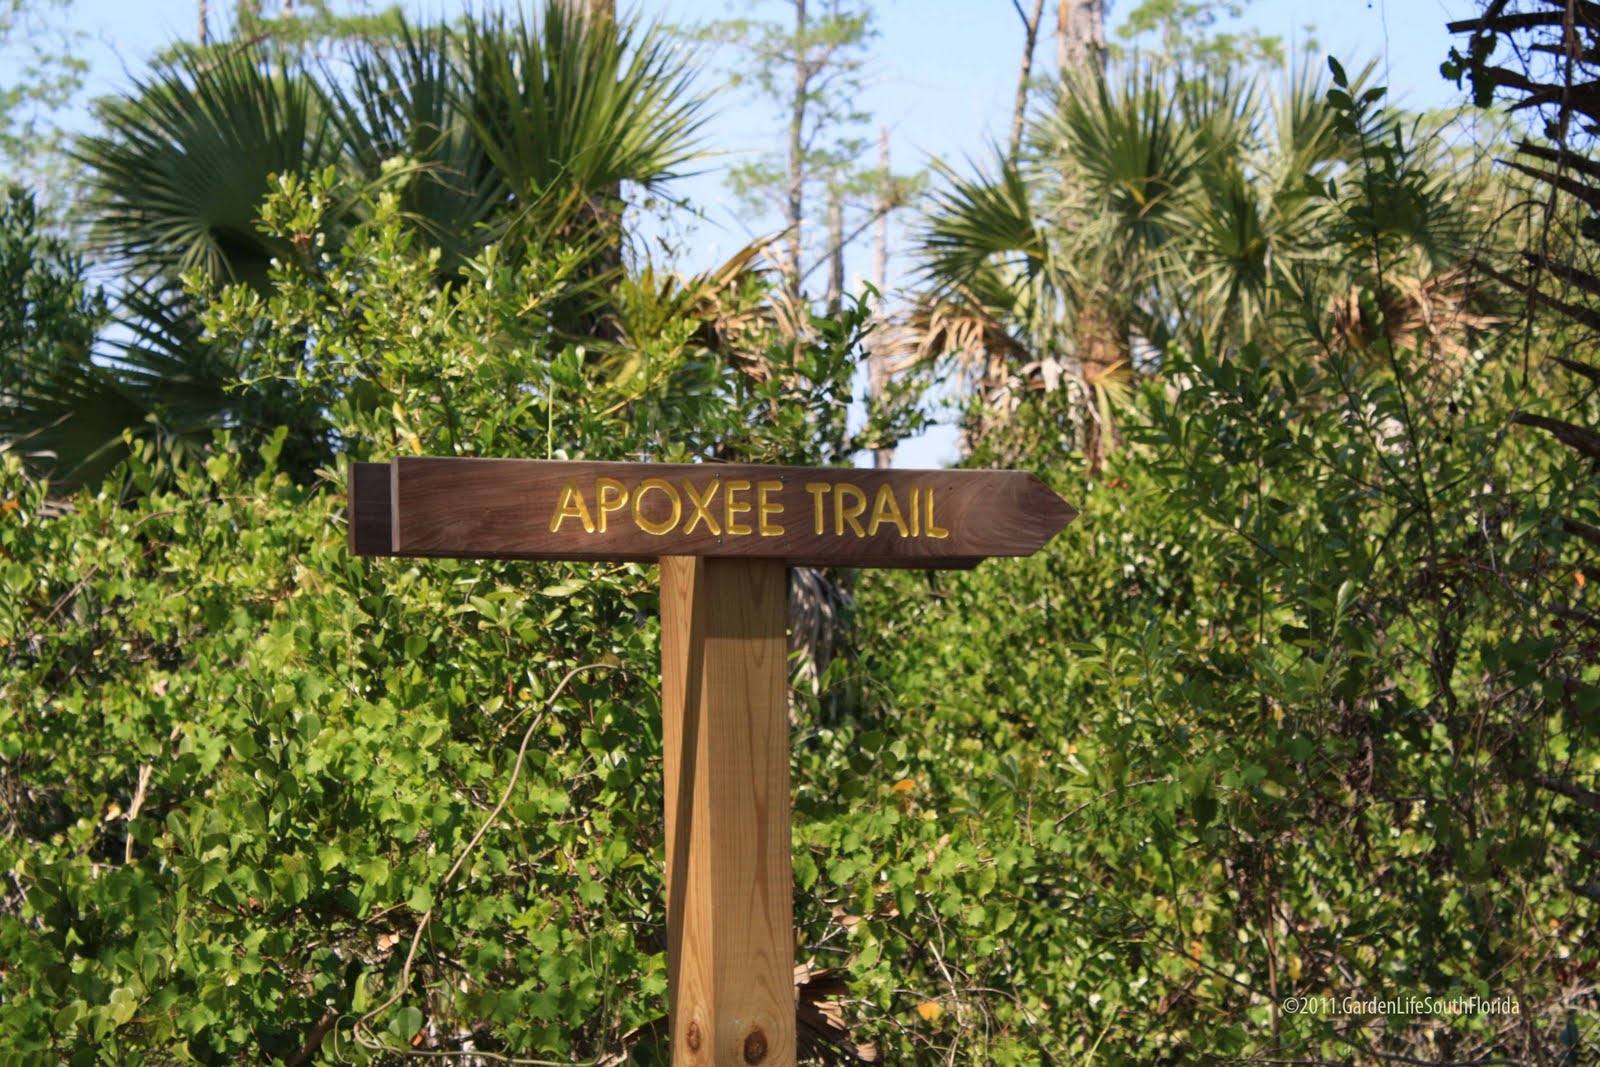 Dawns Garden Life: Trails & Open Spaces III - Apoxee Wilderness Preserve